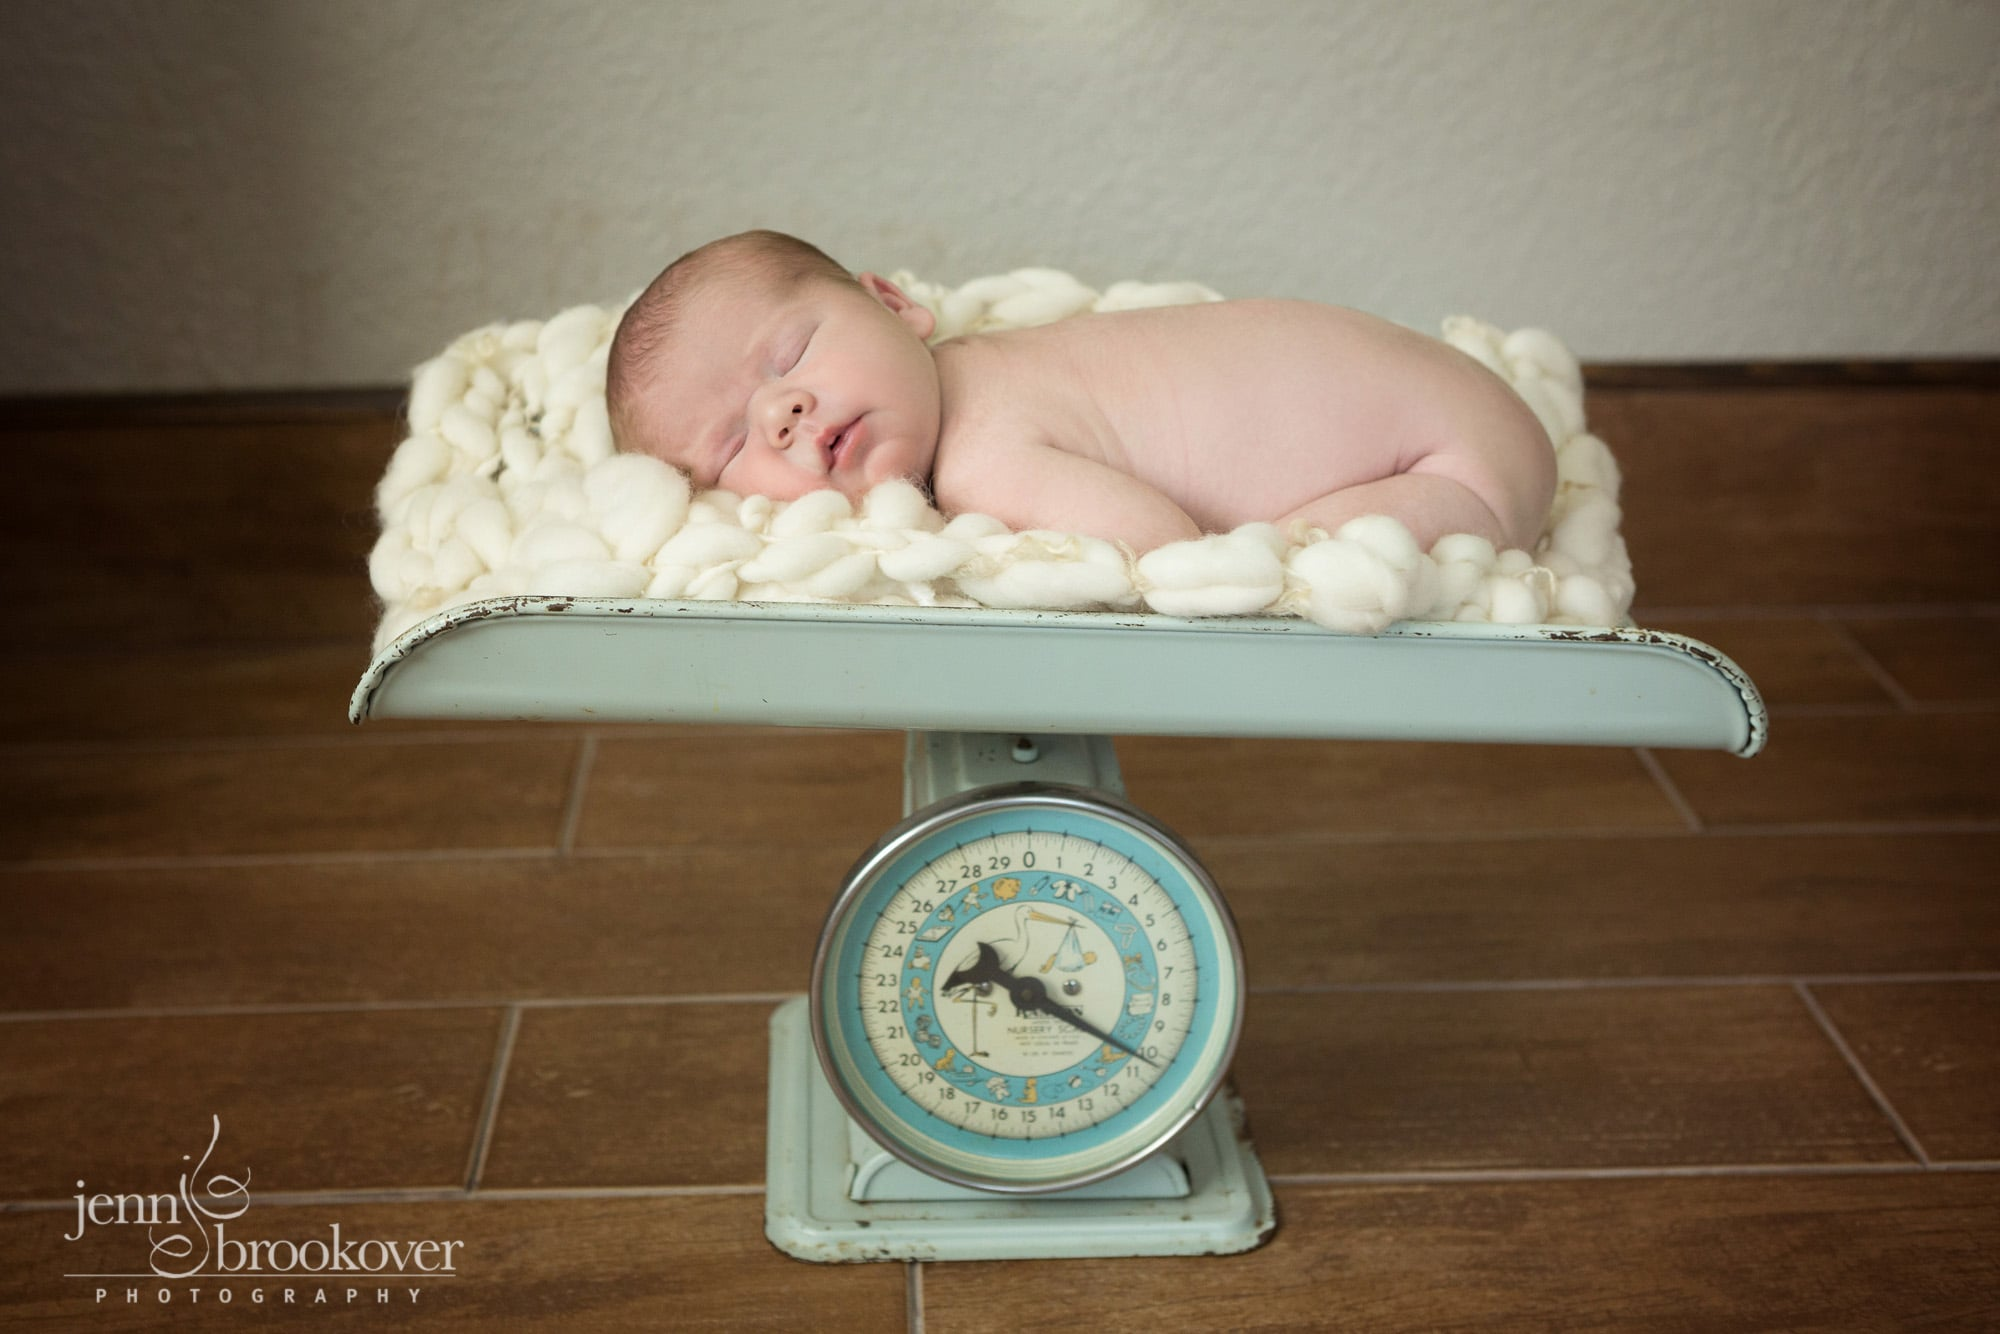 newborn asleep on vintage scale during newborn photo session